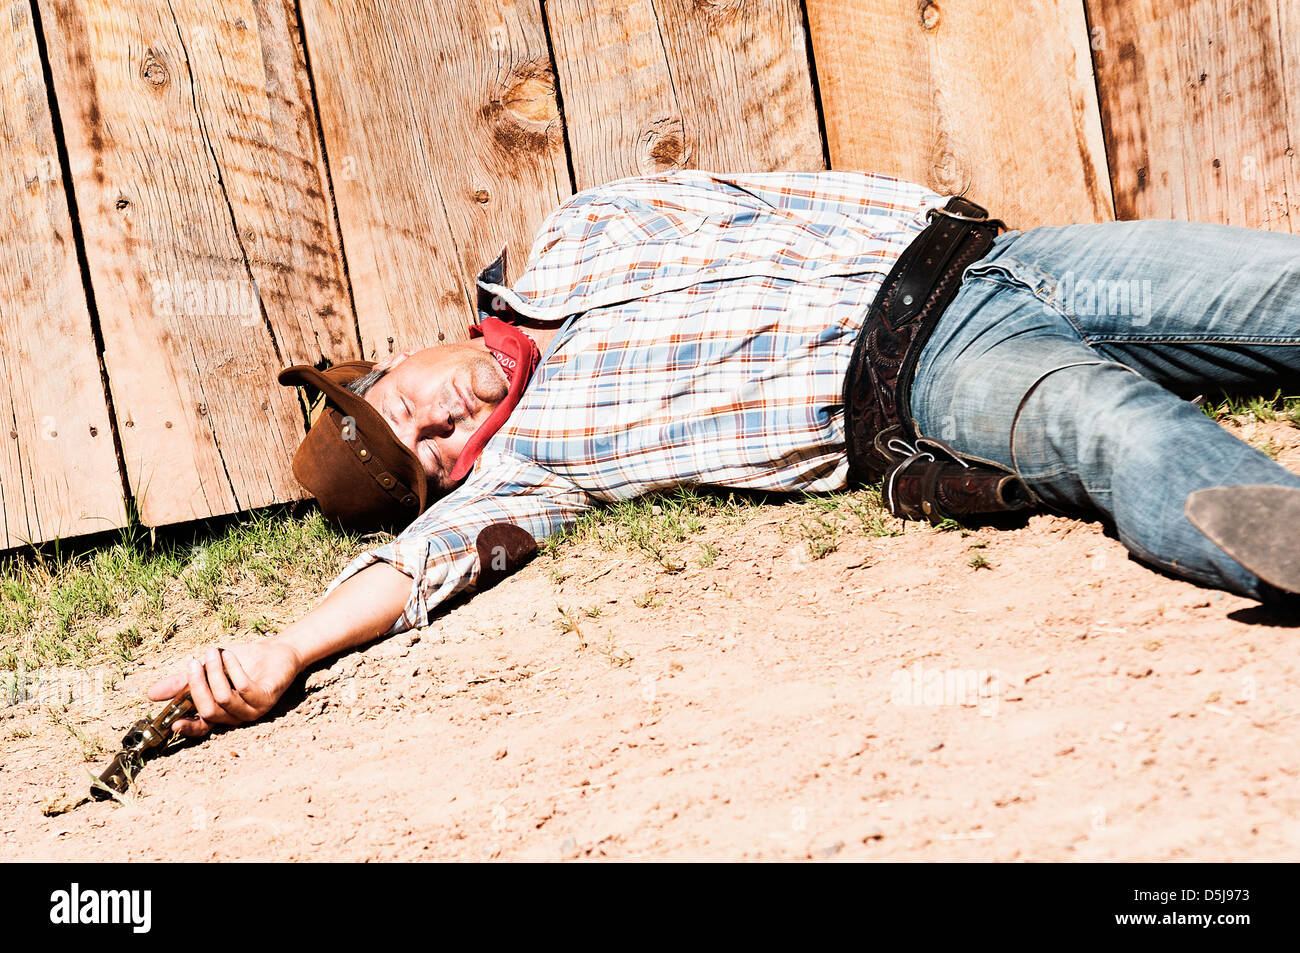 SOUT WEST - A cowboy dead with arm in his hand - Stock Image